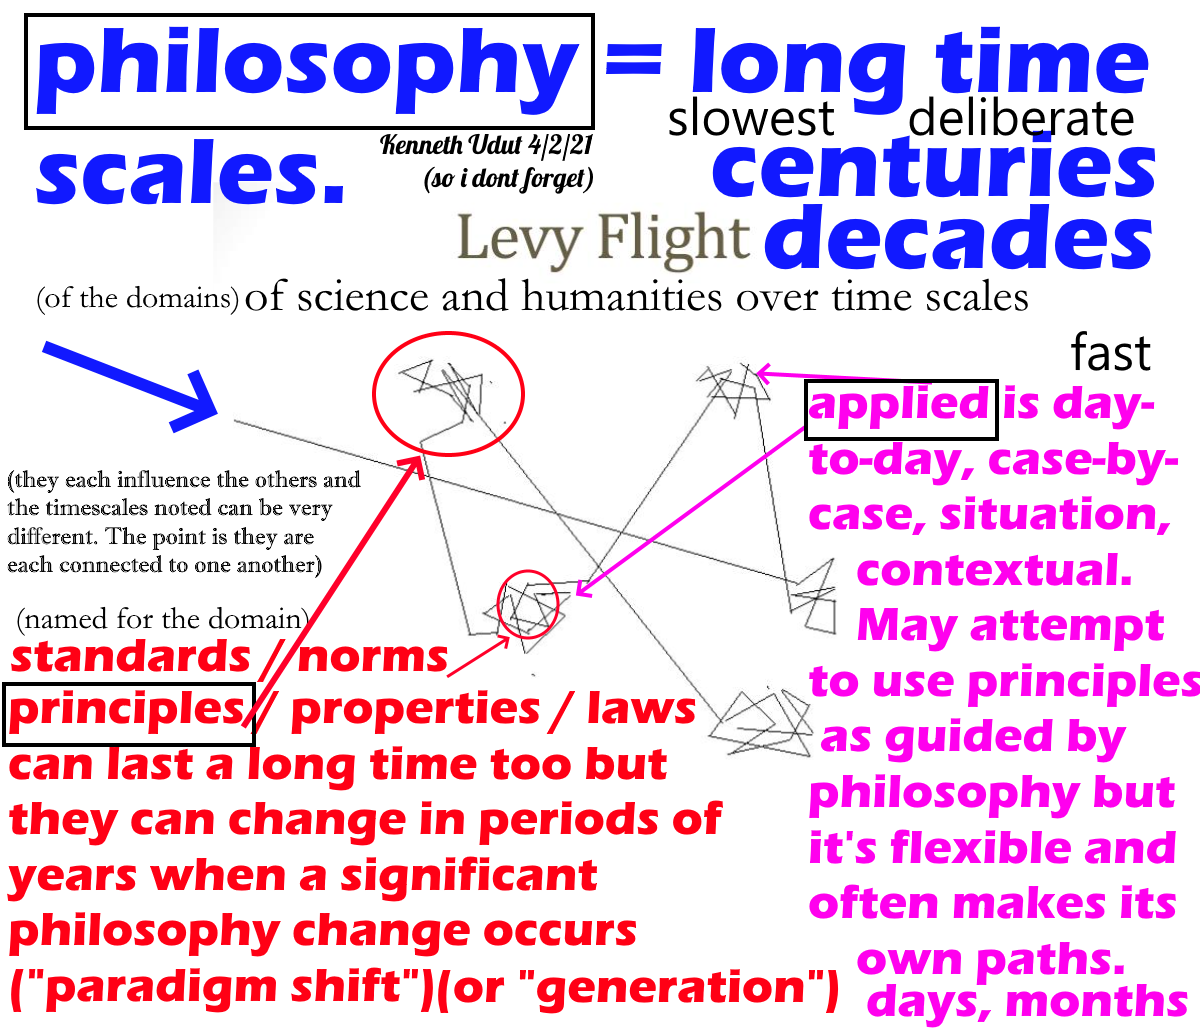 time-scales-philosophy-principles-applied